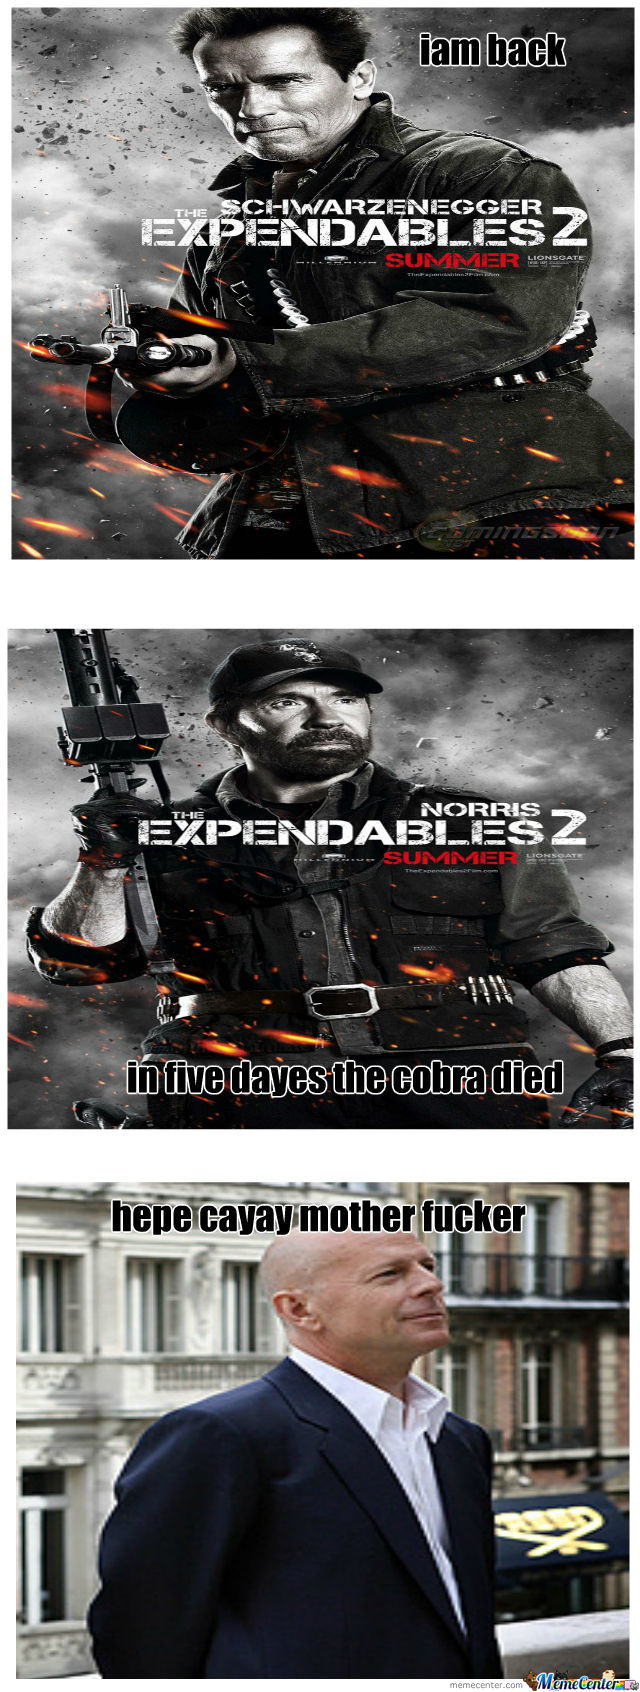 The Best Expendables 2 Qutes